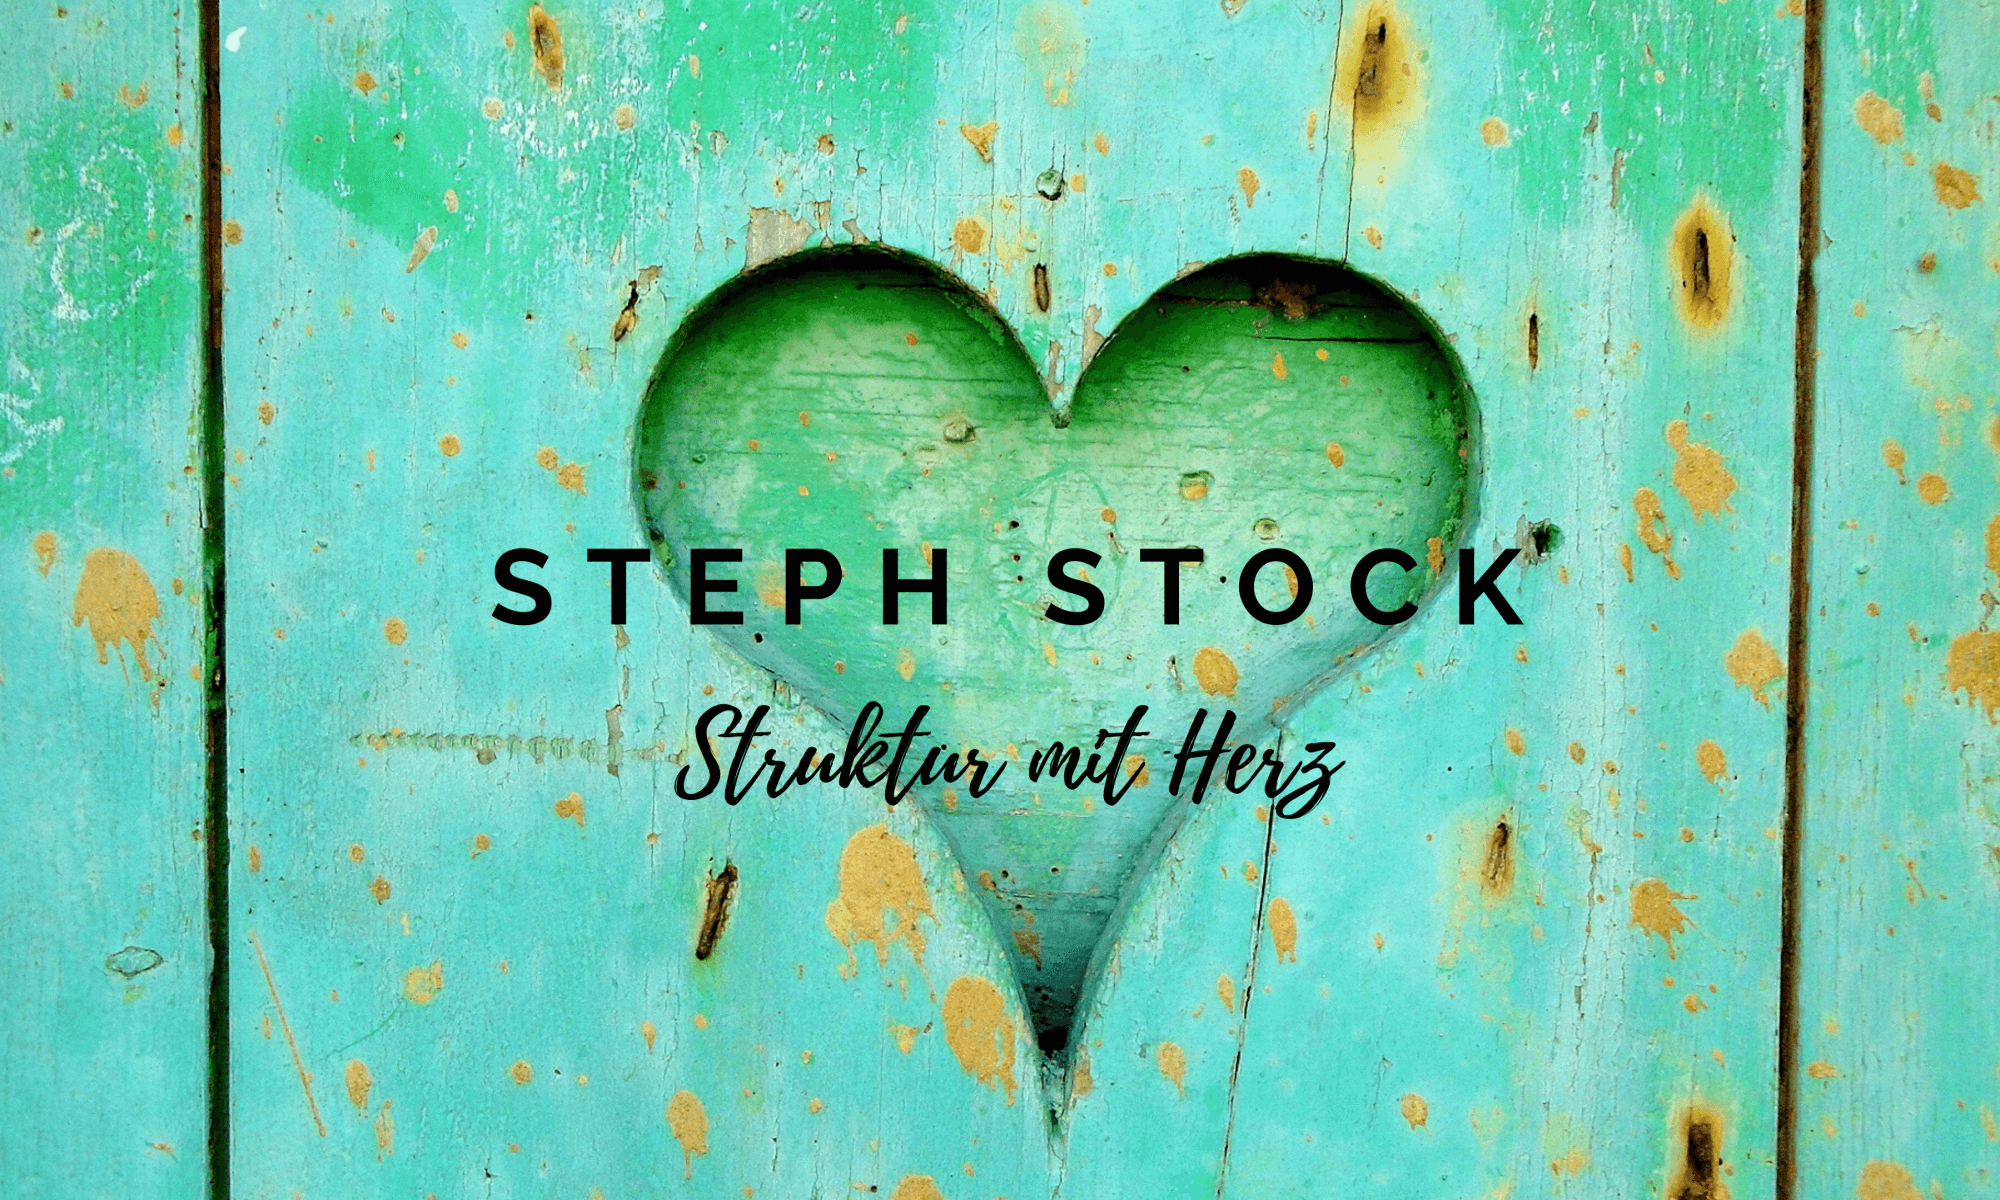 STEPH STOCKS BLOG